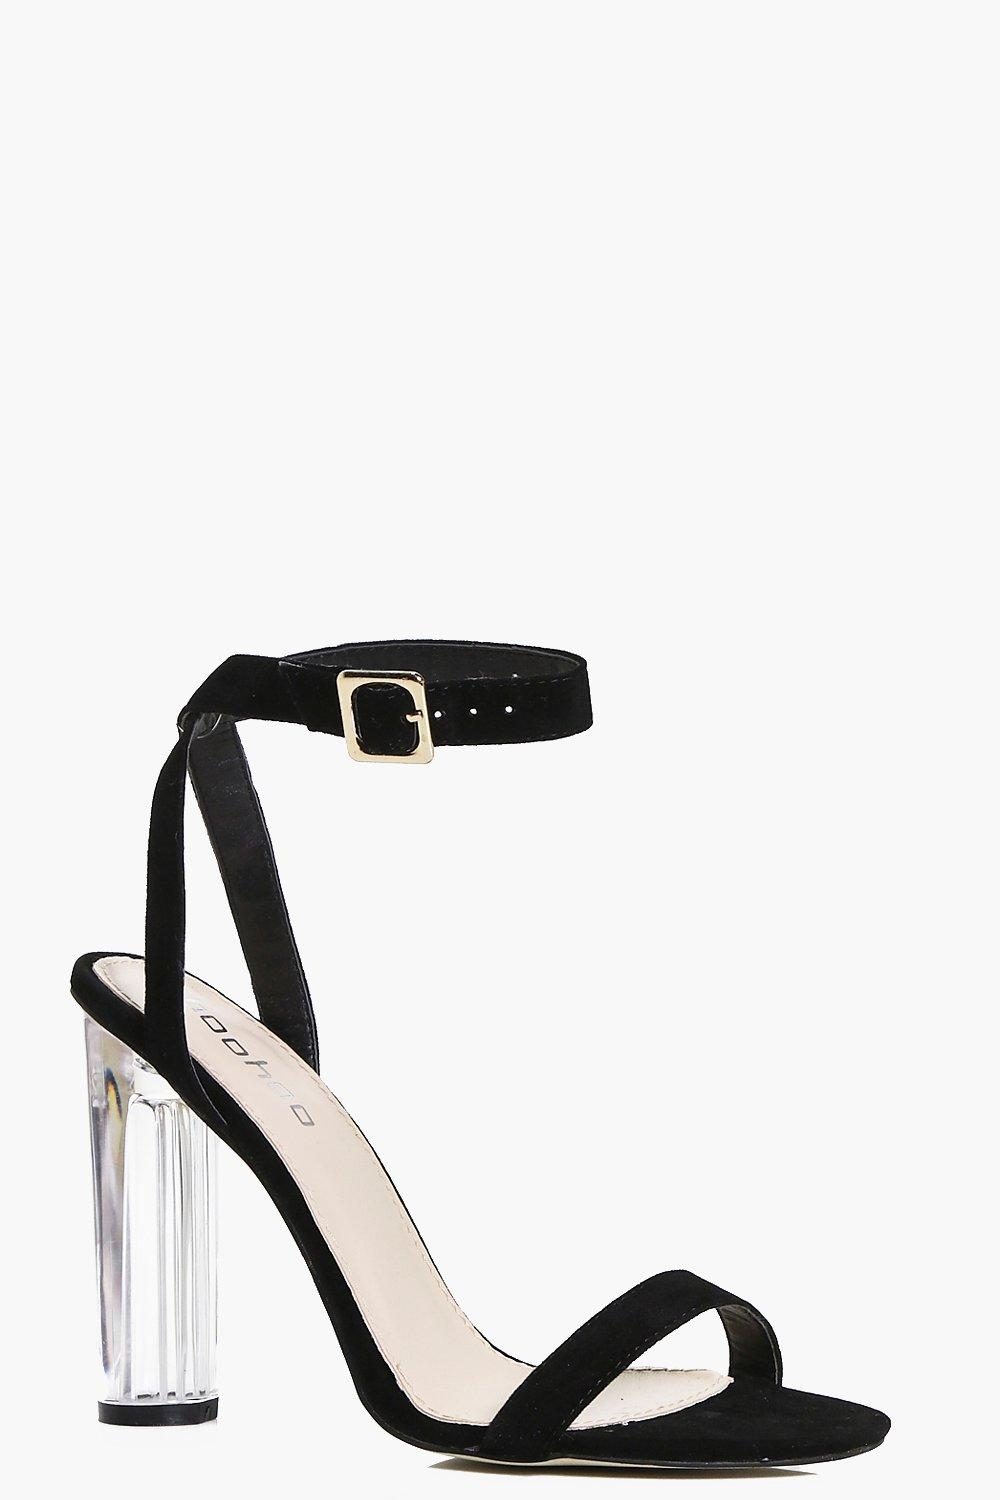 Eva Suedette Two Part Clear Cylinder Heels